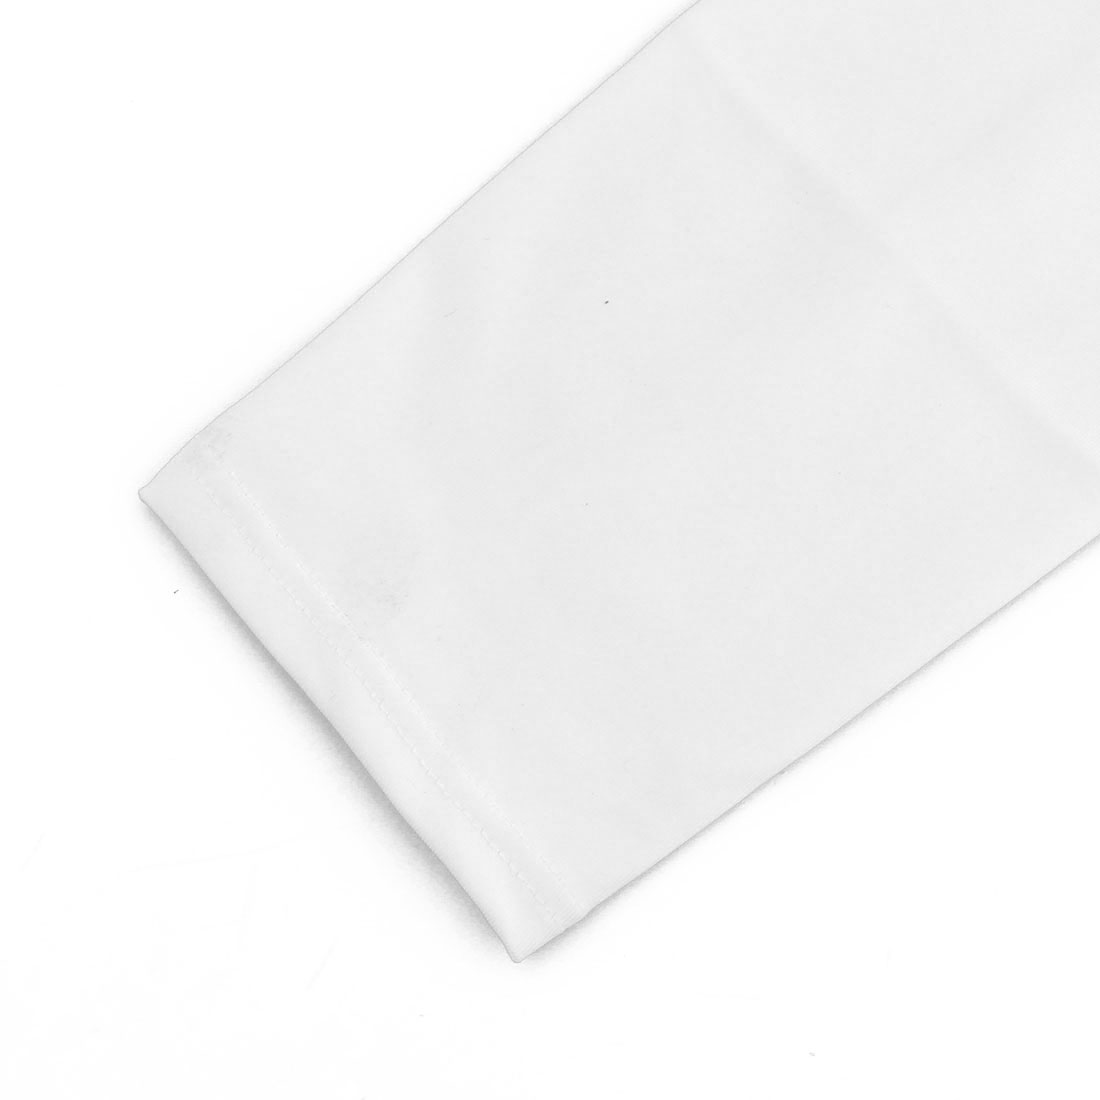 Adult Football Tennis Cycling Running Outdoor Exercise Sports Leg Sleeve White M - image 2 of 5